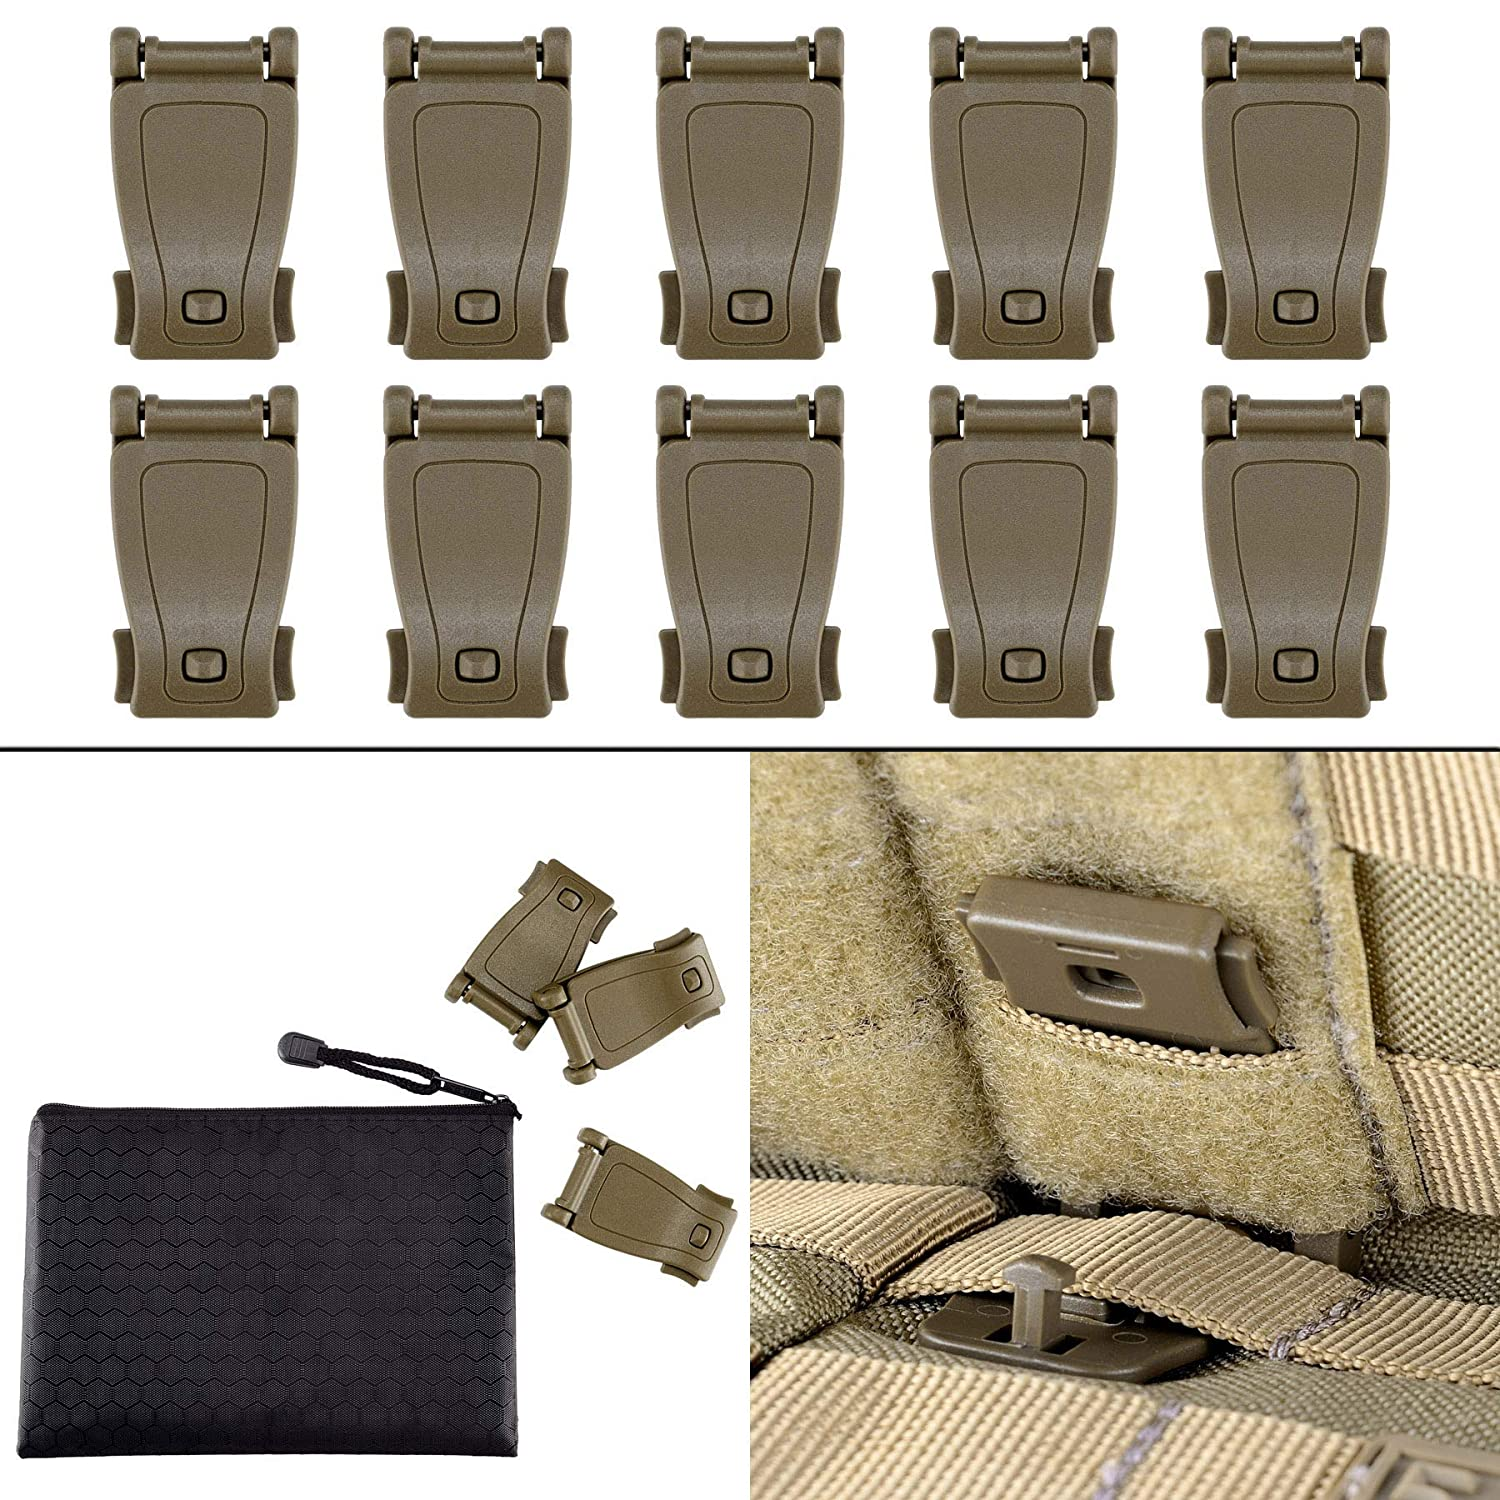 Multipurpose MOLLE Clip Tactical Strap Management Tool Web Dominator Buckle for Tactical Bag, Backpack by BOOSTEADY